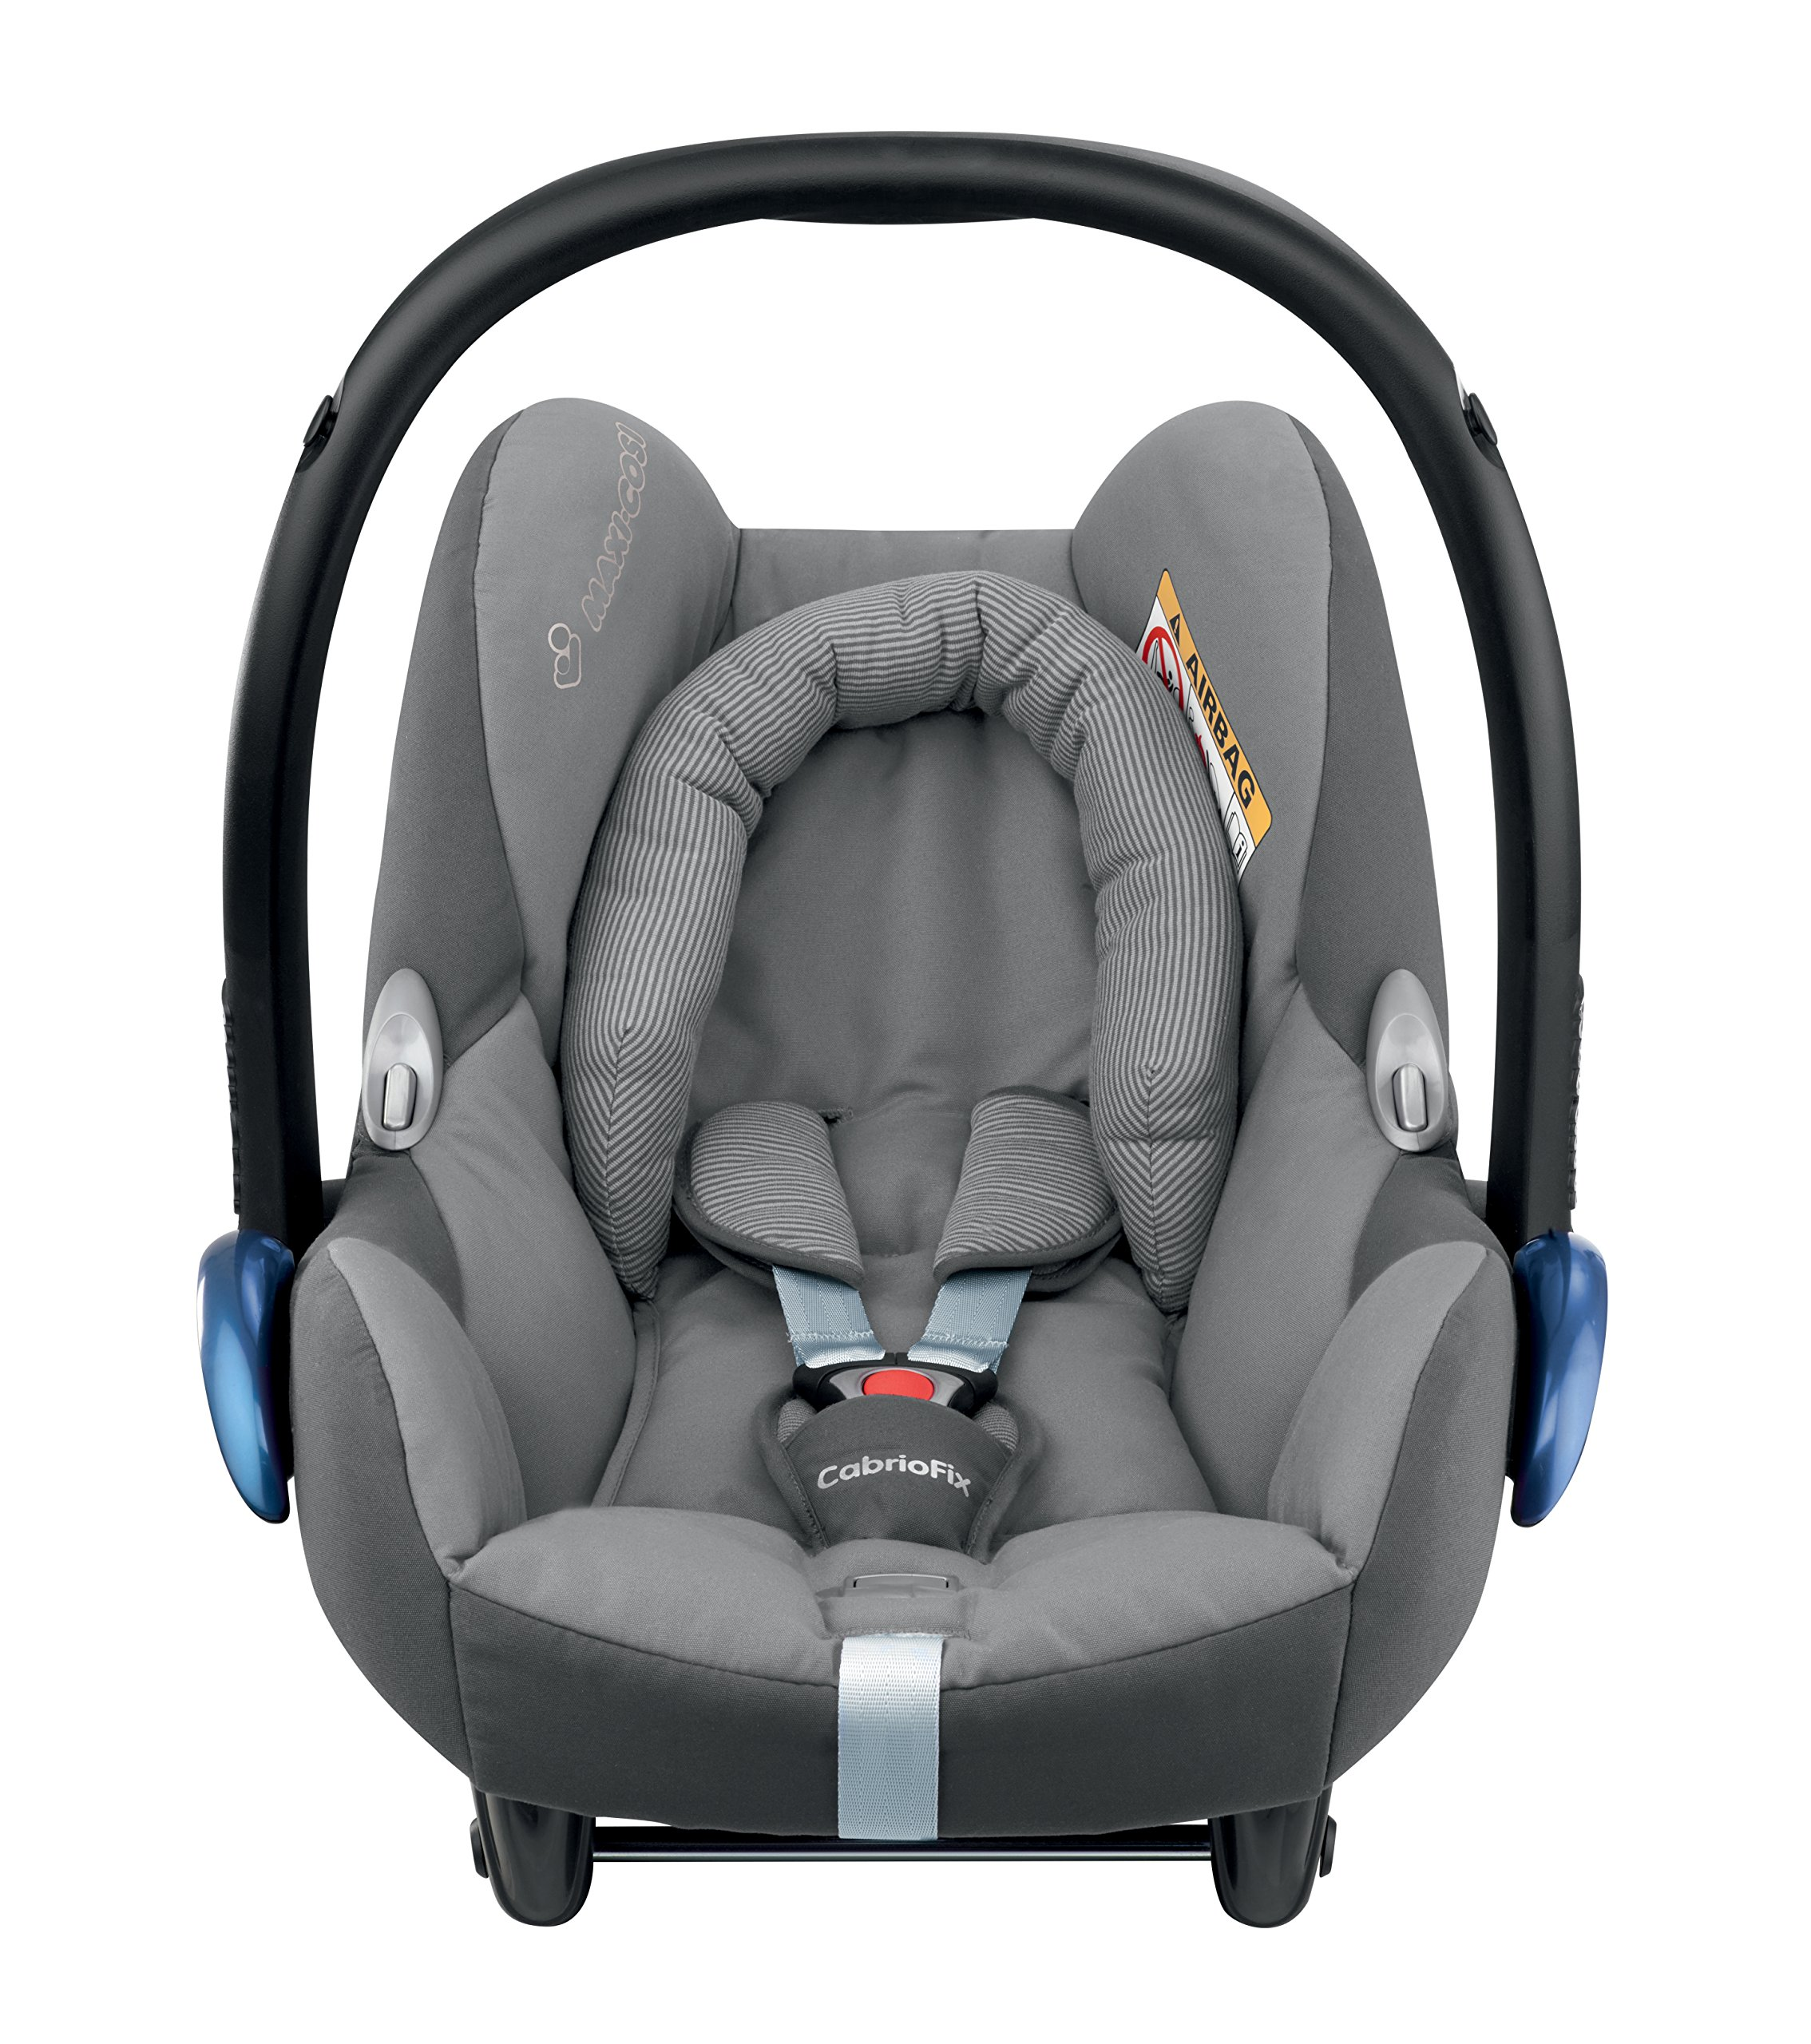 Maxi-Cosi CabrioFix Baby Car Seat Group 0+, ISOFIX, 0-12 Months, 0-13 kg, Concrete Grey Maxi-Cosi Suitable from birth to 13 kg (approximately 12 months) Compatible with Maxi-Cosi and Quinny pushchairs to form a travel system Easy installation in combination with Maxi-Cosi FamilyFix Base, EasyFix Base or a three-point seat belt 2